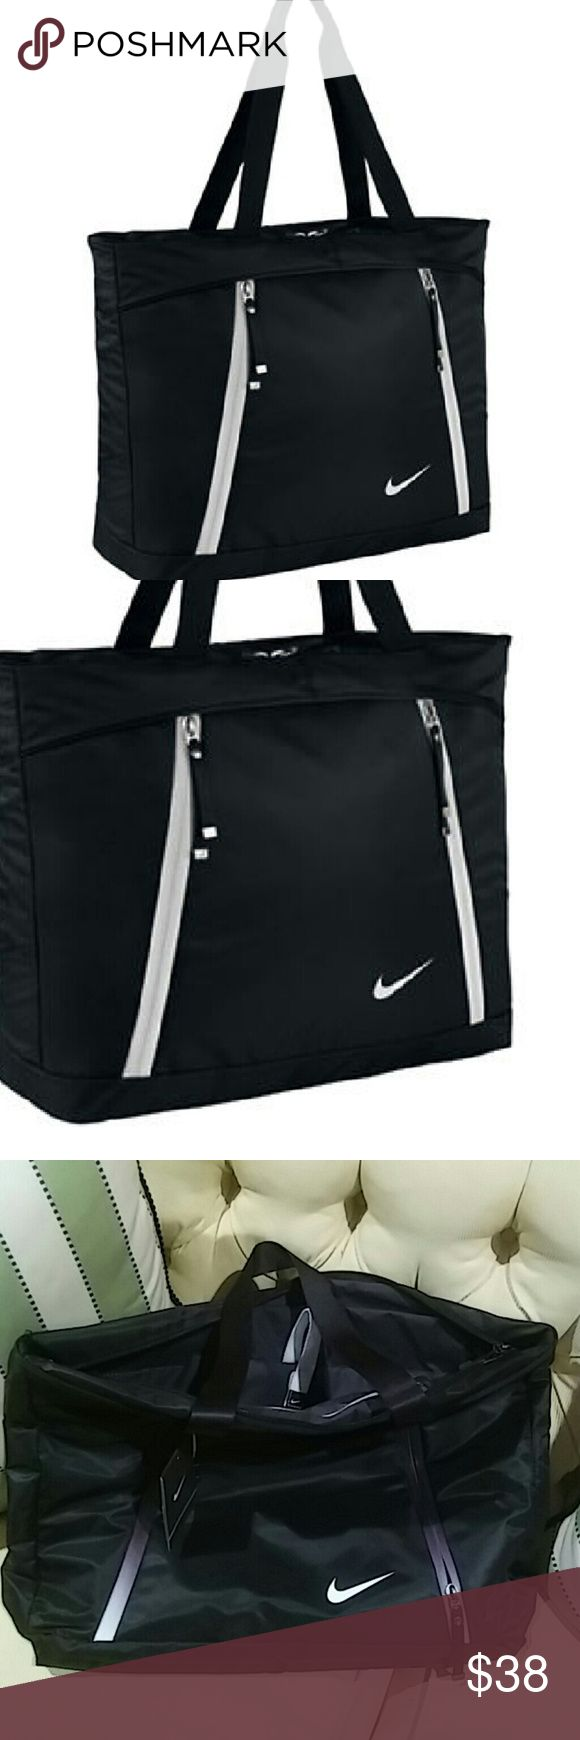 Nwt nike tote This is a very nice brand new Nike tote it has a pocket for a laptop or iPad and it also includes a Nike drawstring bag for your accessories. This couch has a zipper on the top and two small zippers on the front. The dimensions are 13.5 height ? 15.5 wide ? 5 in diameter Nike Bags